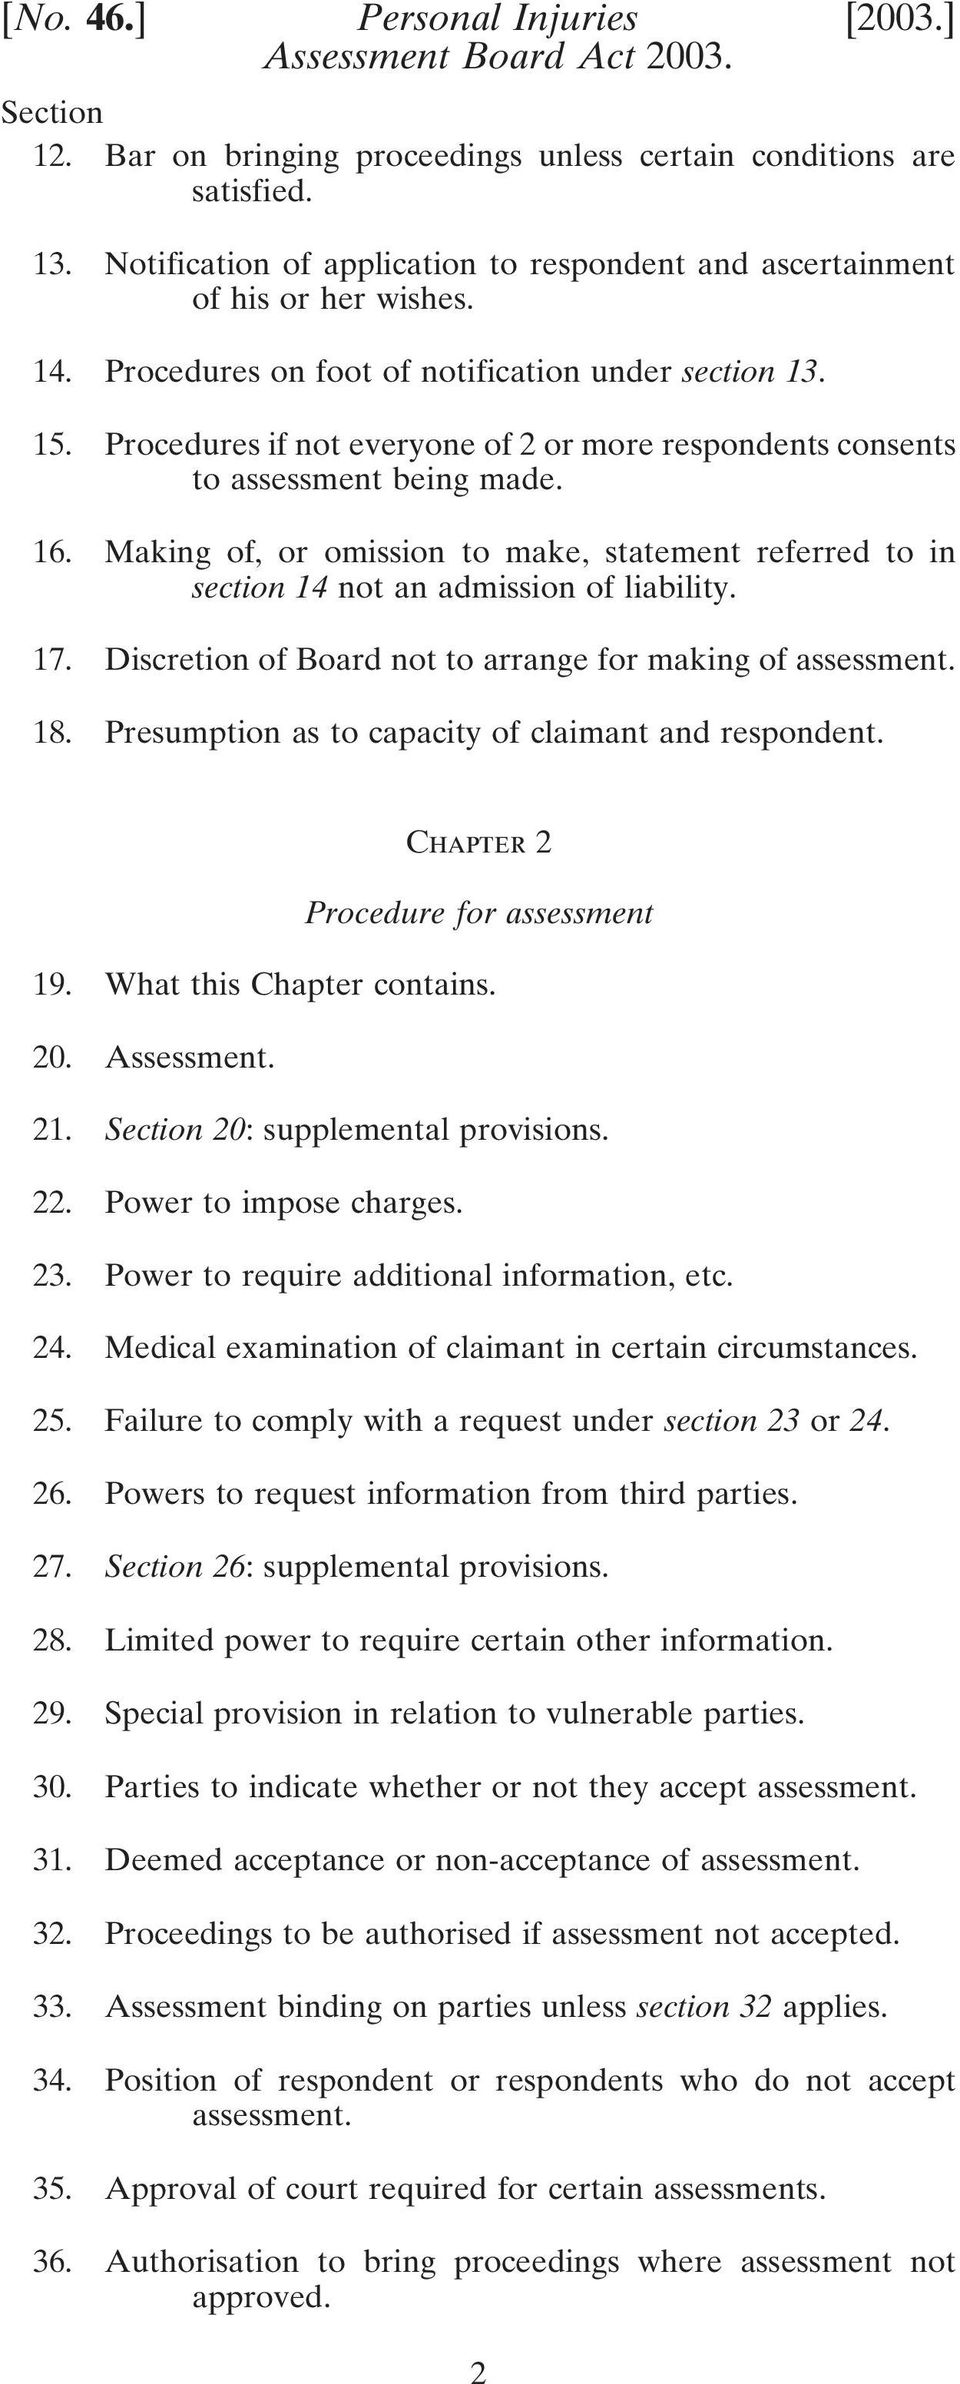 Procedures if not everyone of 2 or more respondents consents to assessment being made. 16. Making of, or omission to make, statement referred to in section 14 not an admission of liability. 17.